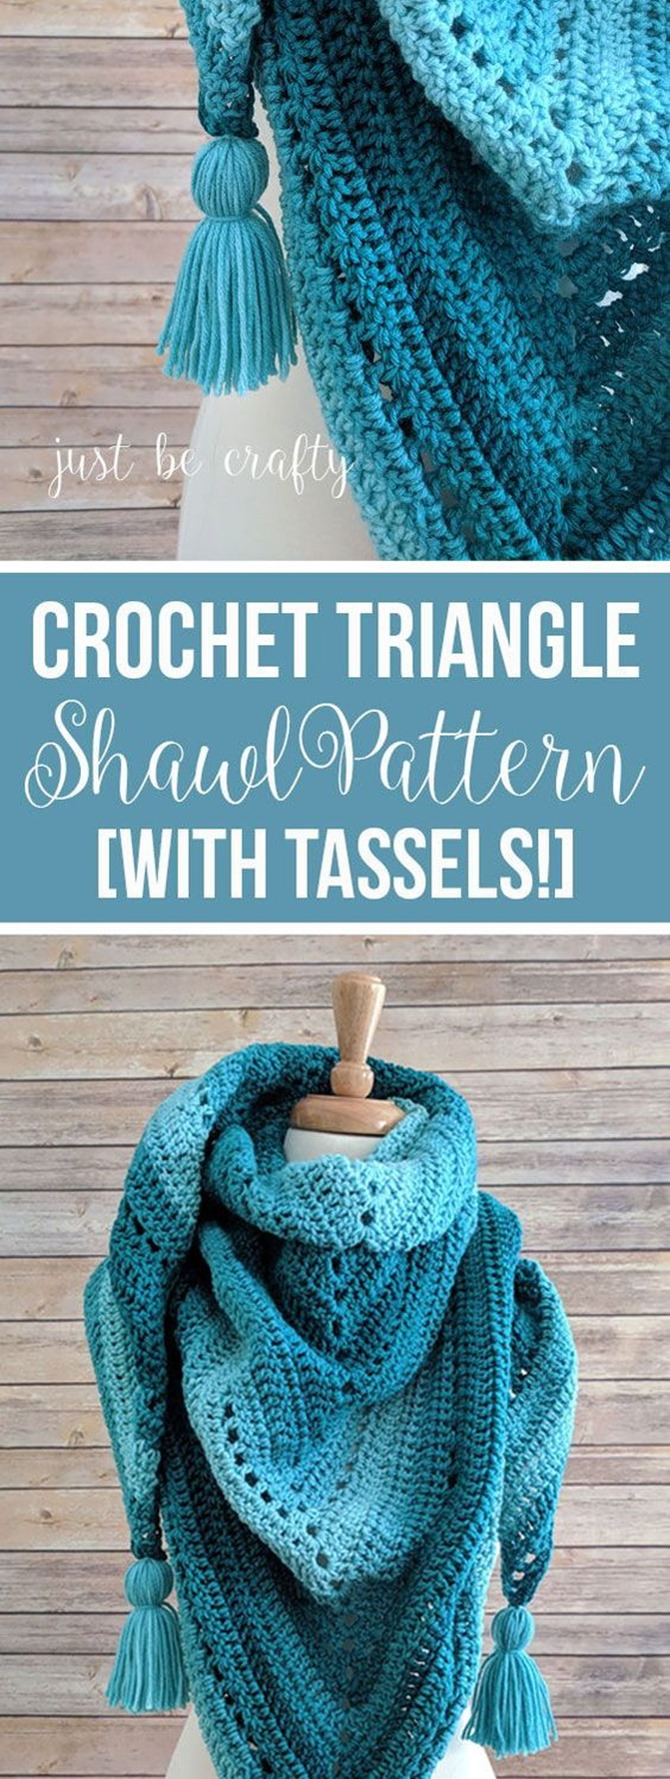 Free Crochet Shawl Pattern - Triangle with tassels